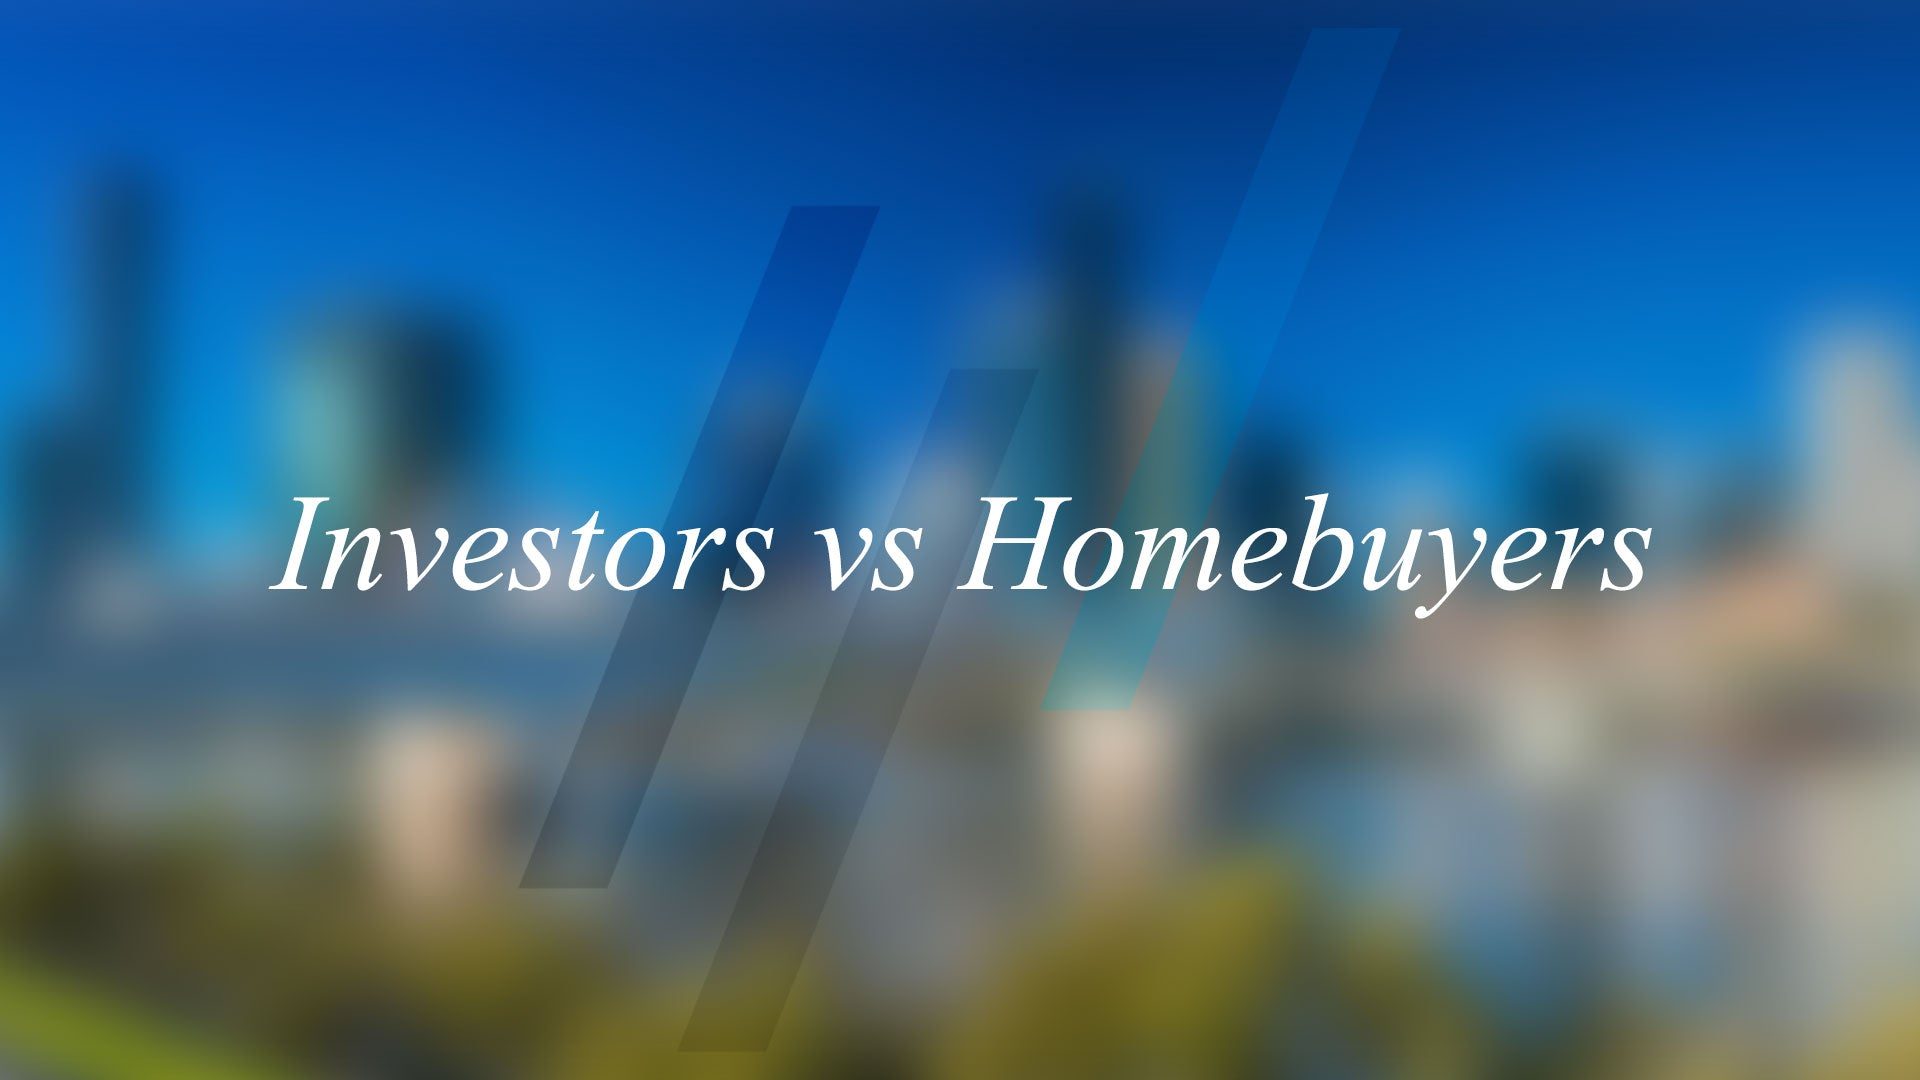 Investors vs Homebuyers